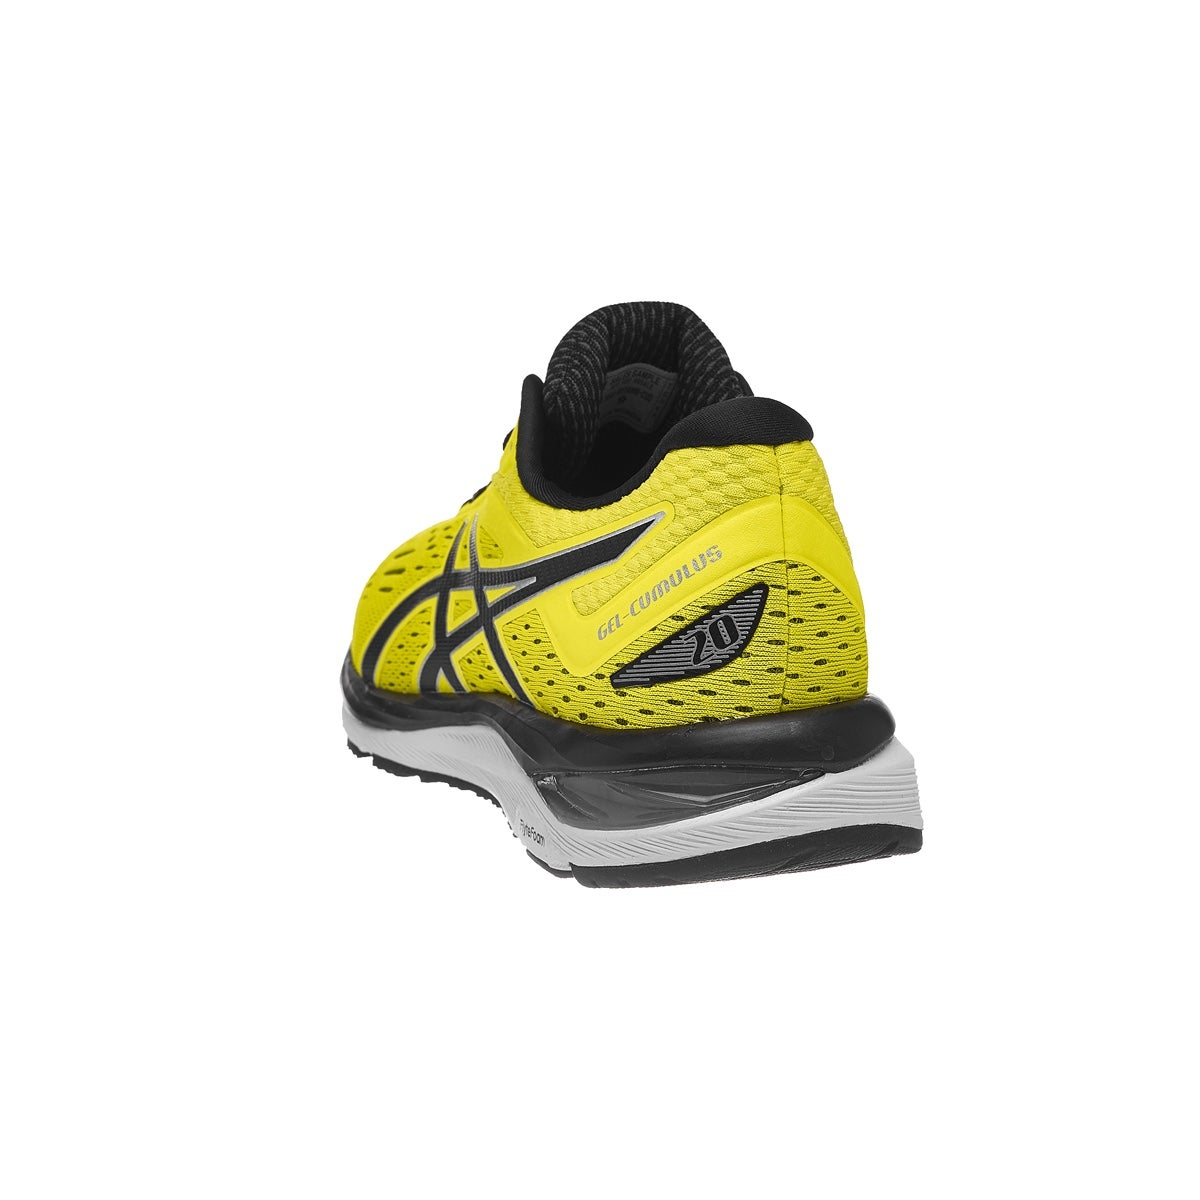 get cheap ca510 7647c ASICS Gel Cumulus 20 Men's Shoes Lemon Spark/Black 360° View ...